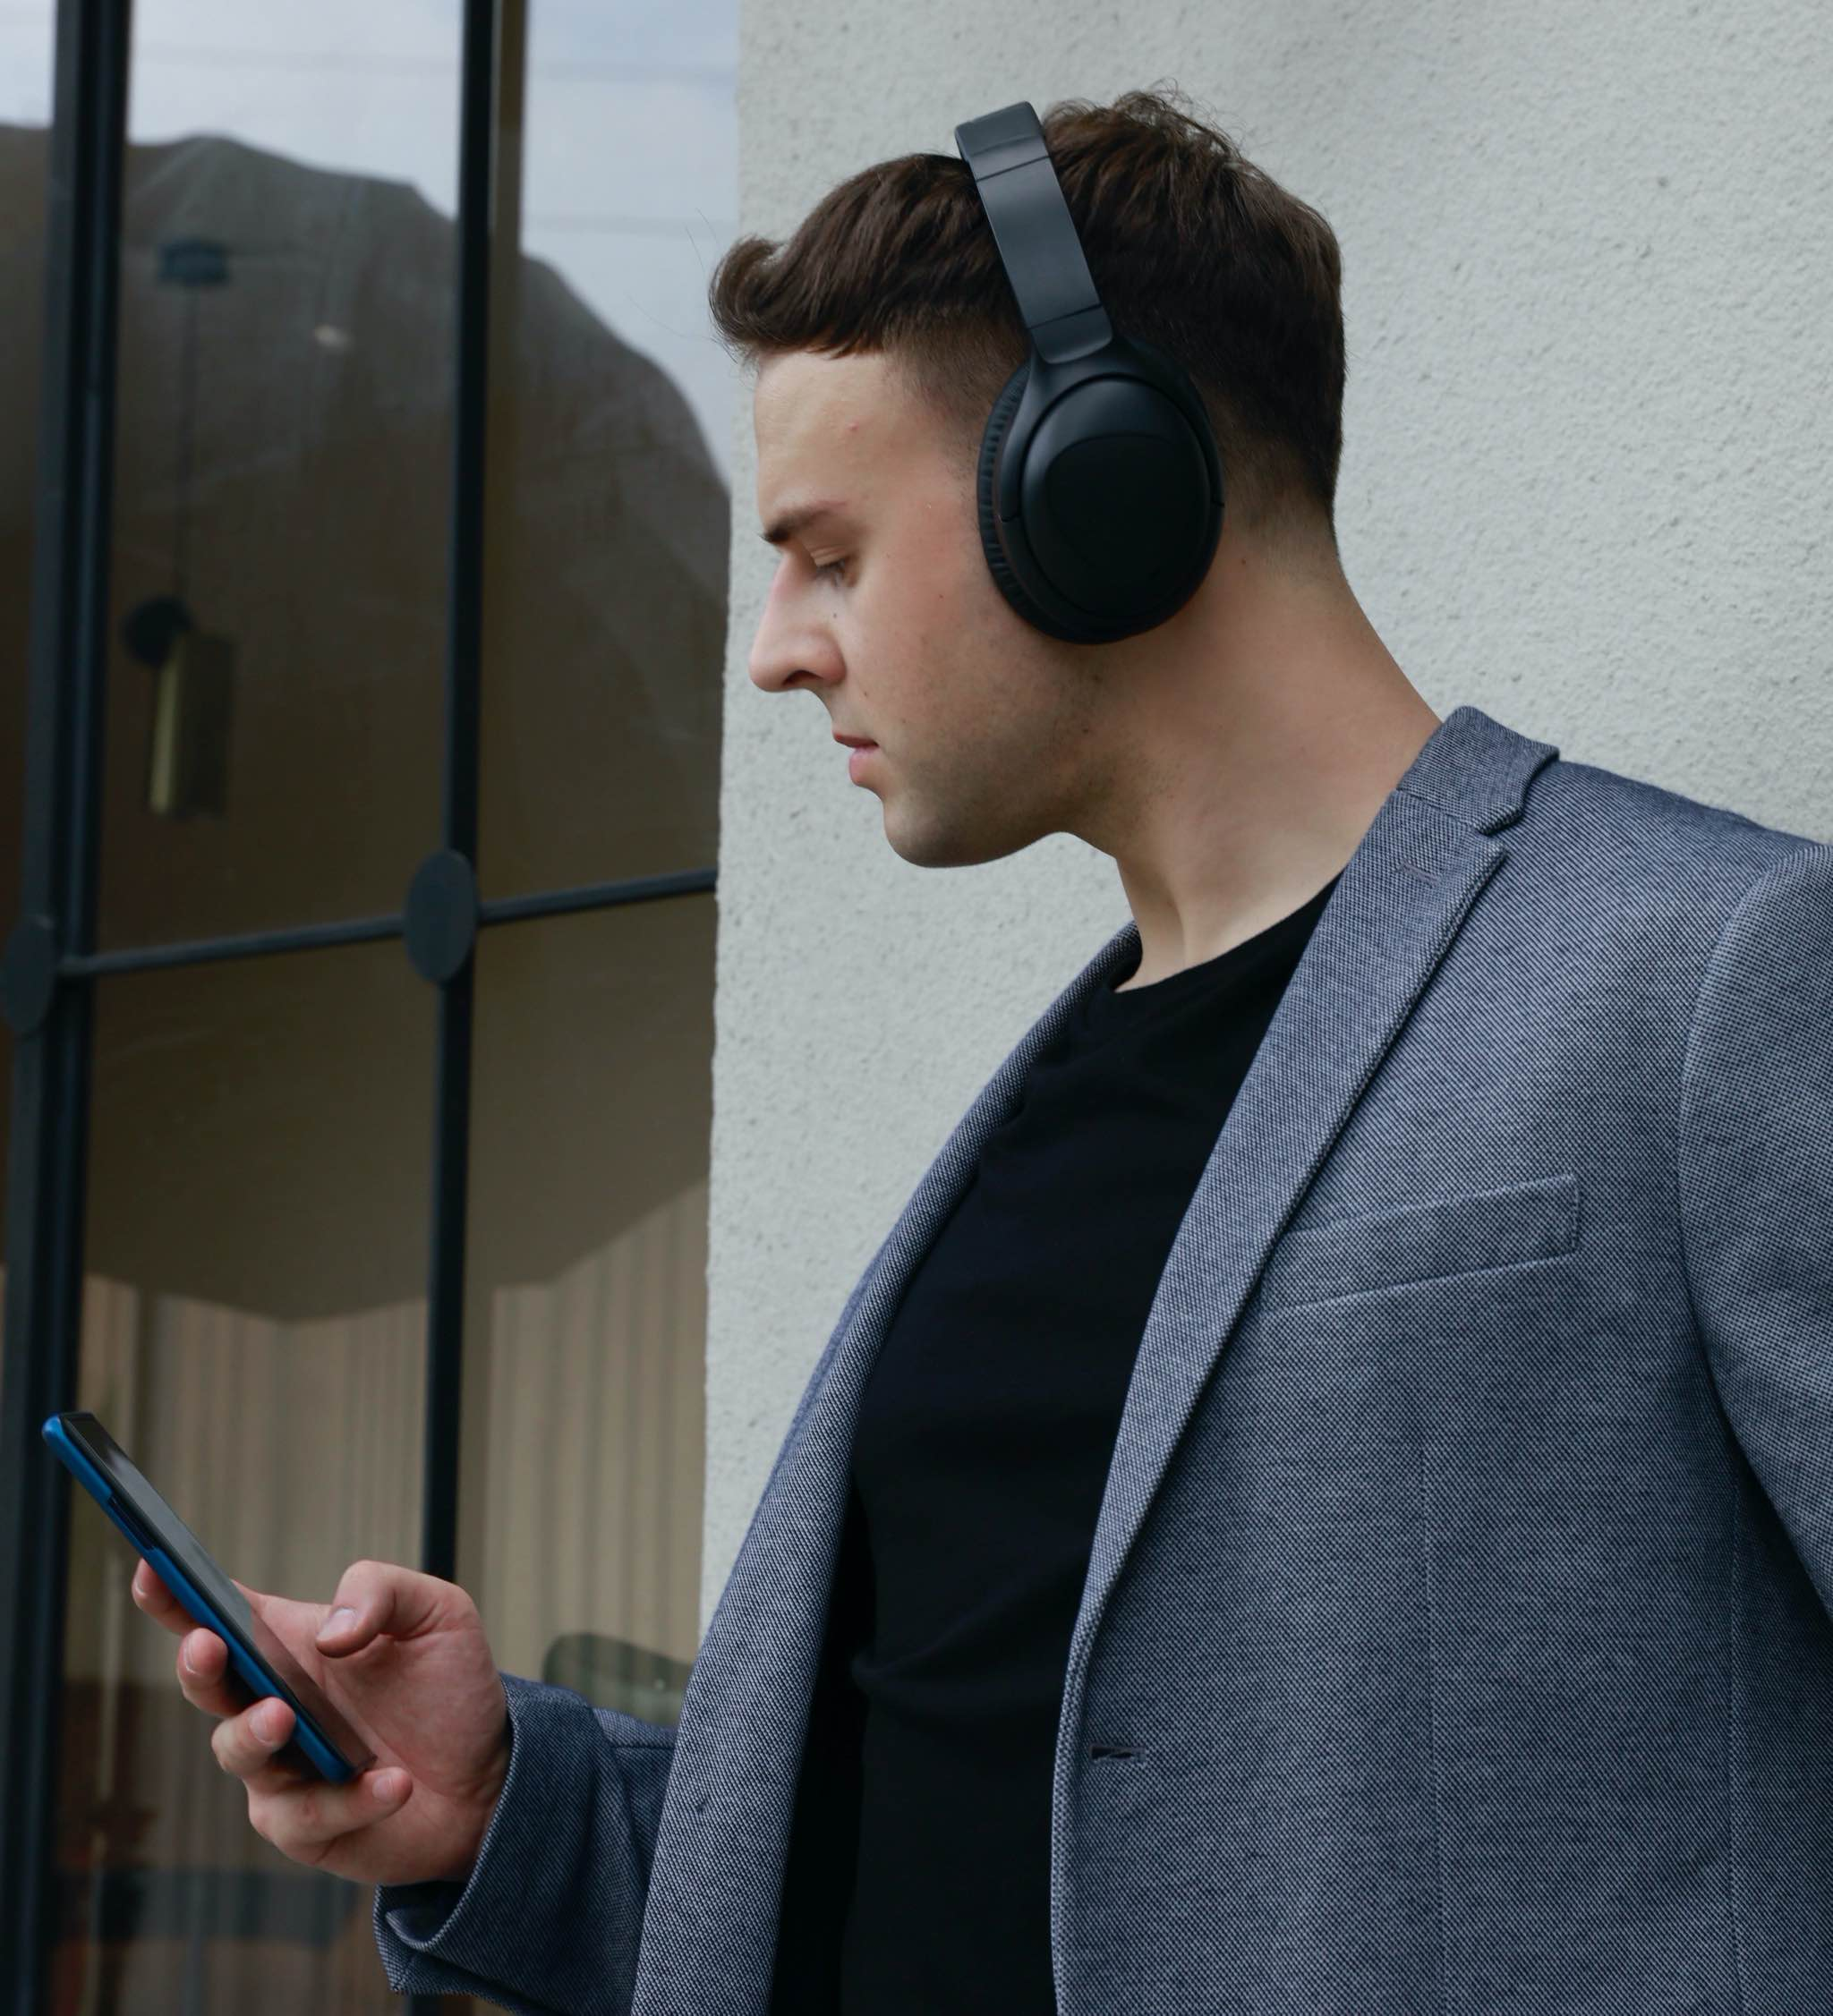 A photograph showing a young man wearing Pro Pro headphones and holding an iPhone 11 in his hand